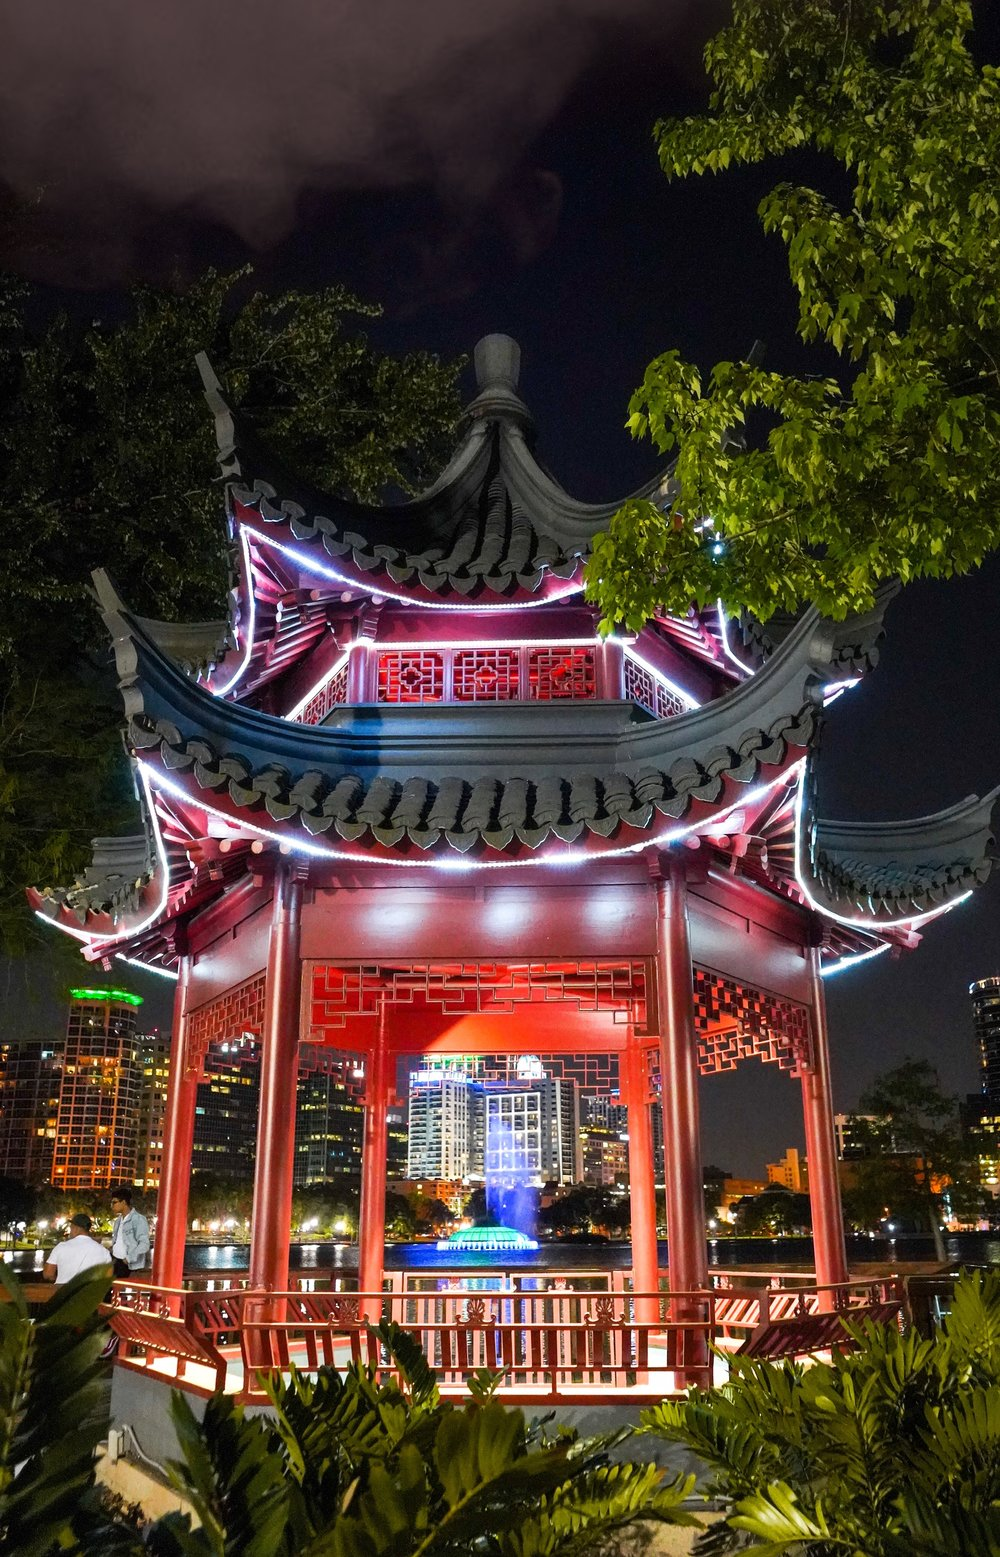 Chinese_Pagoda_Lake-Eola_Orlando-Chris_Kernstock.jpeg